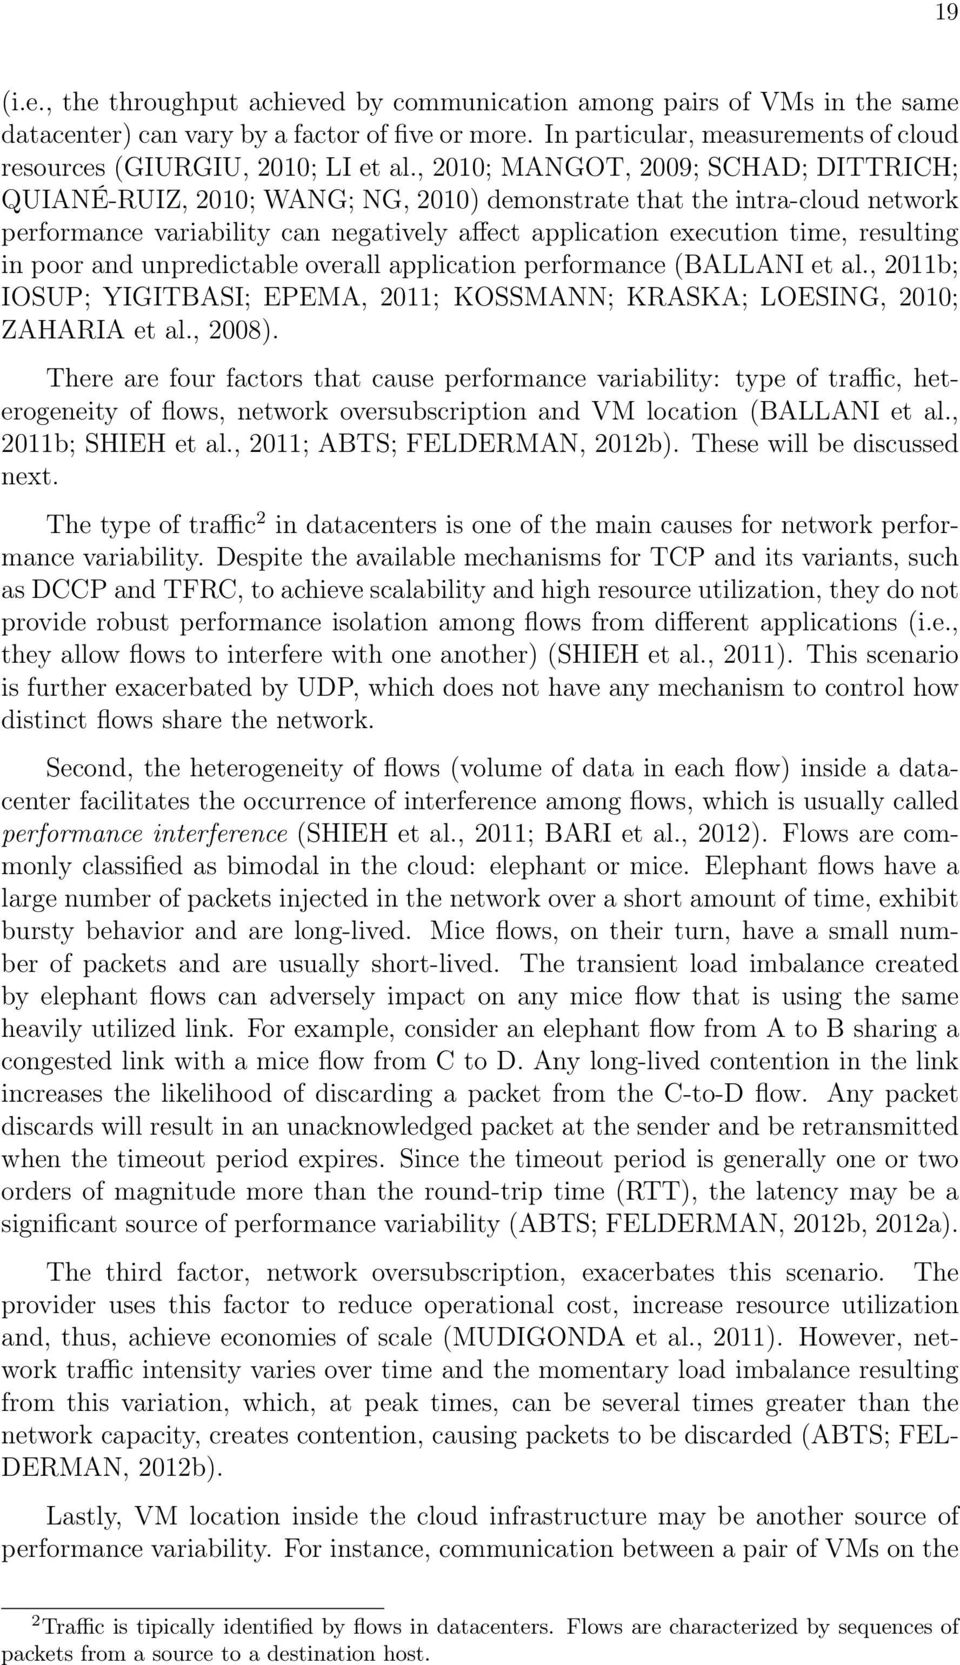 , 2010; MANGOT, 2009; SCHAD; DITTRICH; QUIANÉ-RUIZ, 2010; WANG; NG, 2010) demonstrate that the intra-cloud network performance variability can negatively affect application execution time, resulting